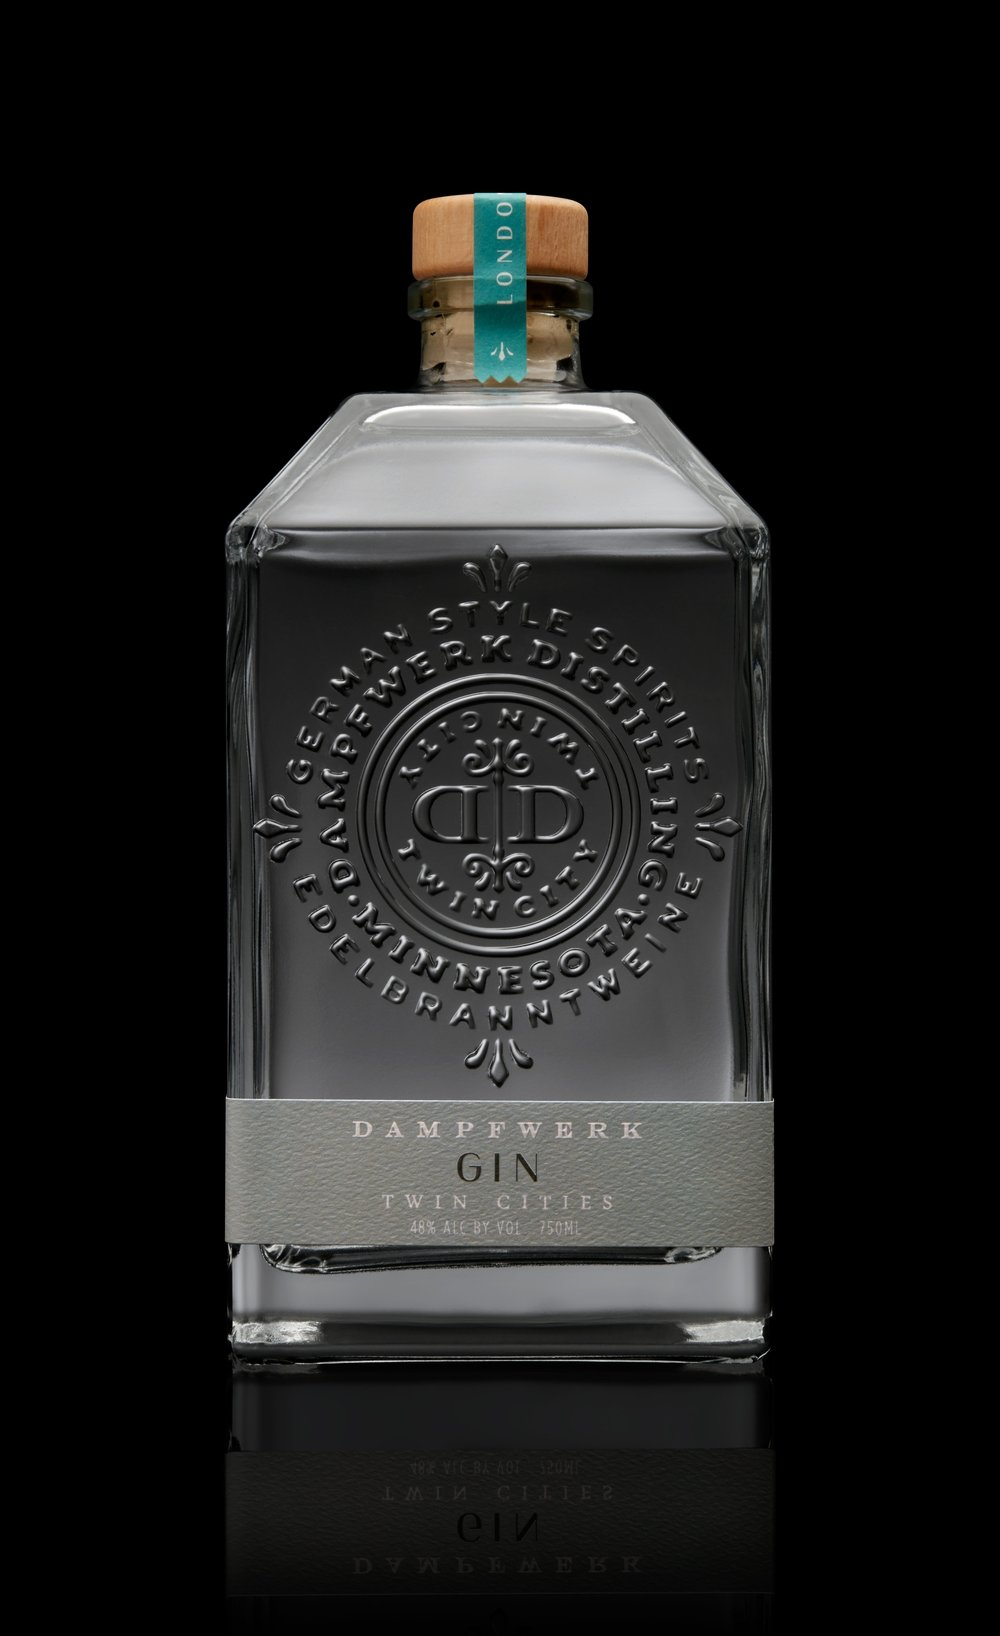 LONDON DRY GIN   A fresh, Minnesotan take on the classical juniper botanical blend, perfect for a Gin & Tonic.